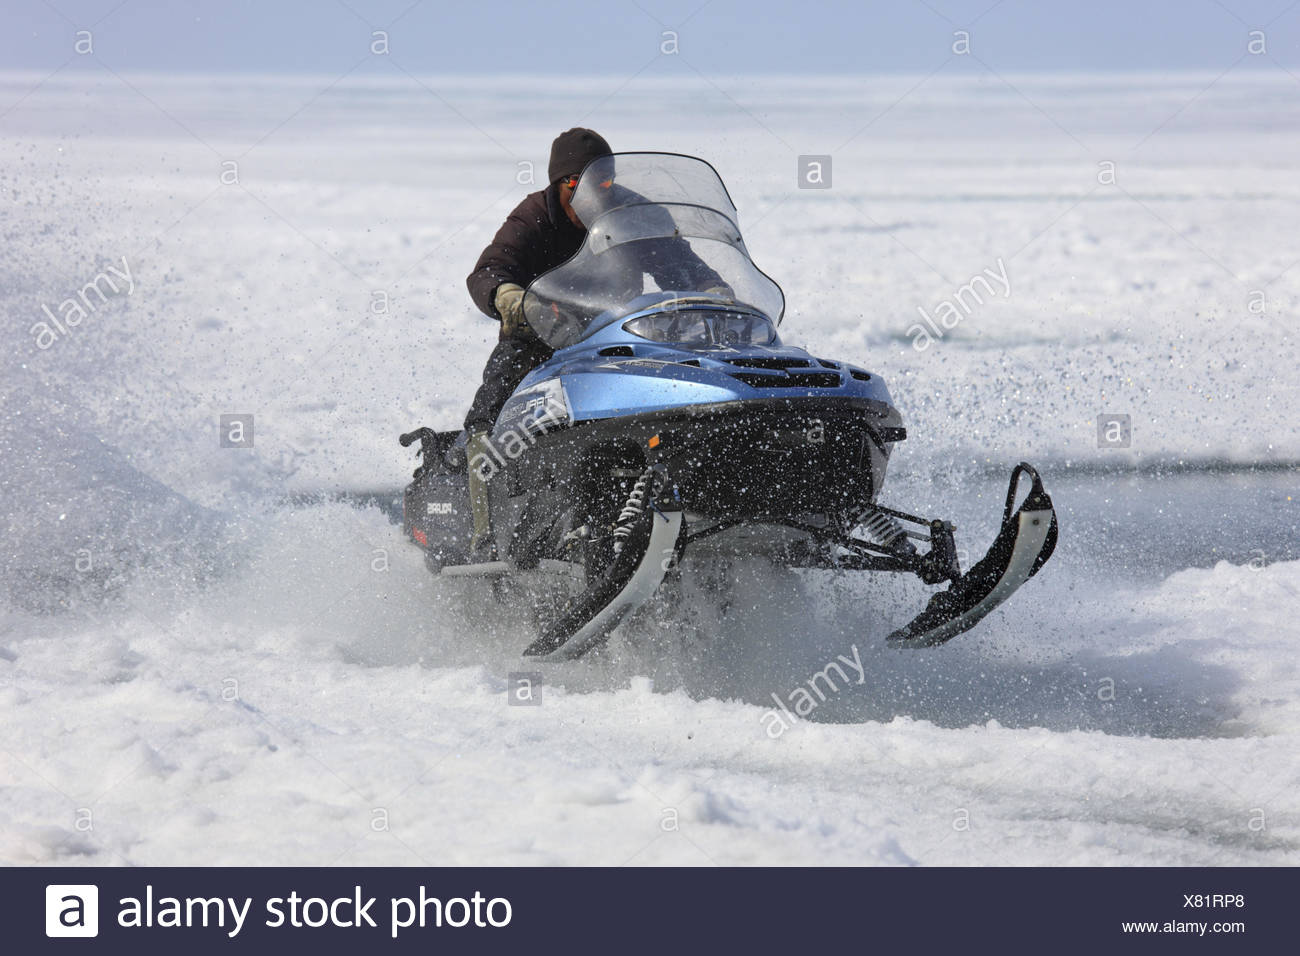 North America, Canada, Nordkanada, Nunavut, Baffin Iceland, Eclipse sound, Pond Inlet, pack ice, Inuit, Skidoo, Snow-mobile, - Stock Image